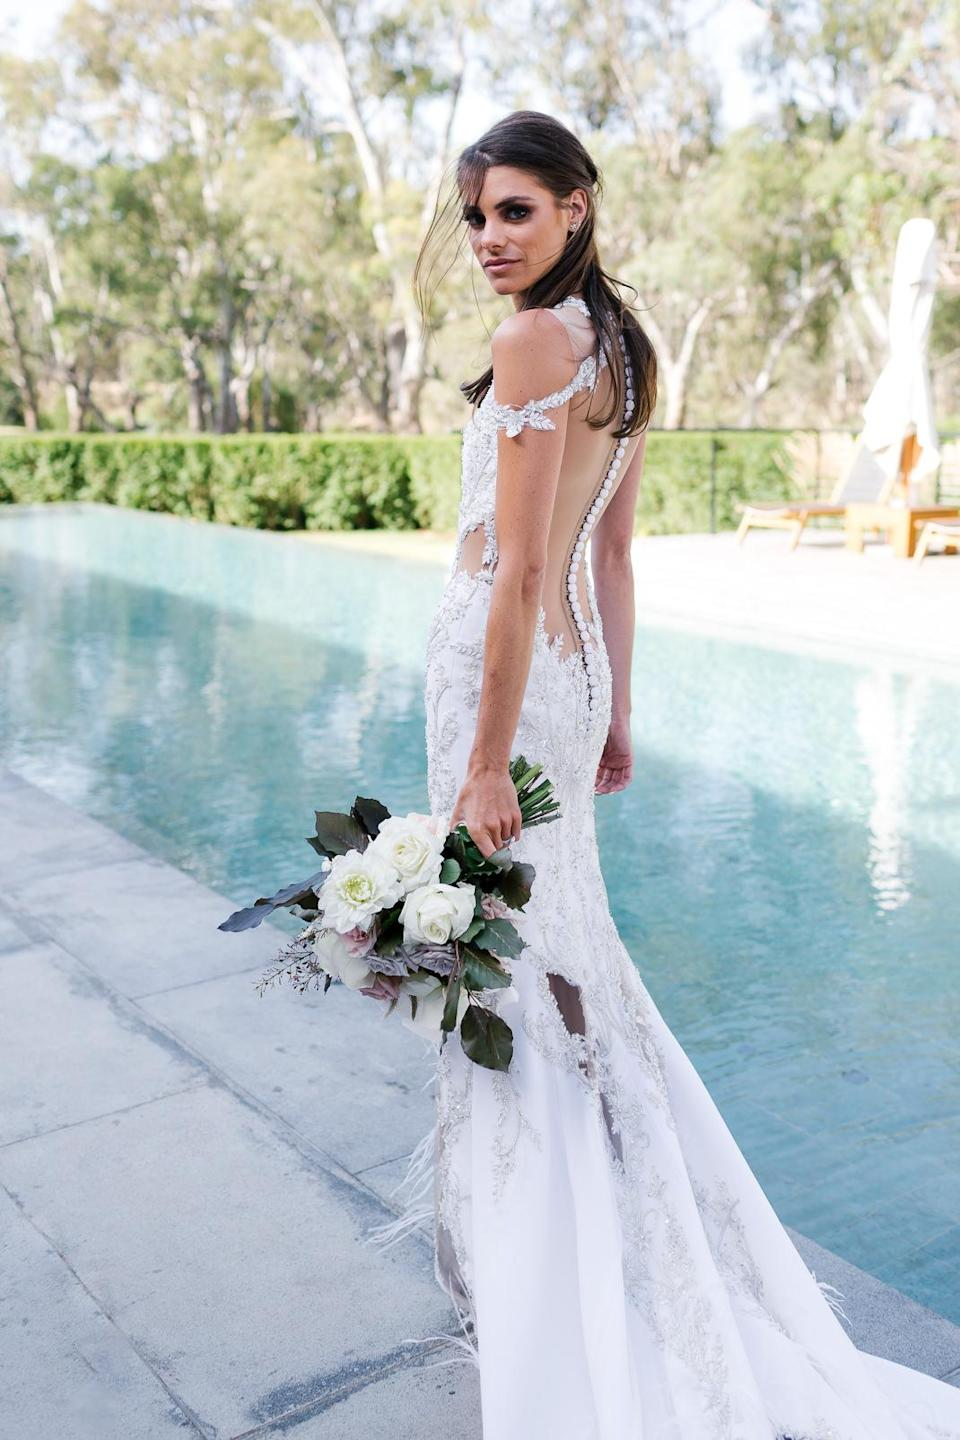 Charlotte stunned in a gorgeous bespoke Oglialoro Couture dress for her walk down the aisle. Photo: Chloe May